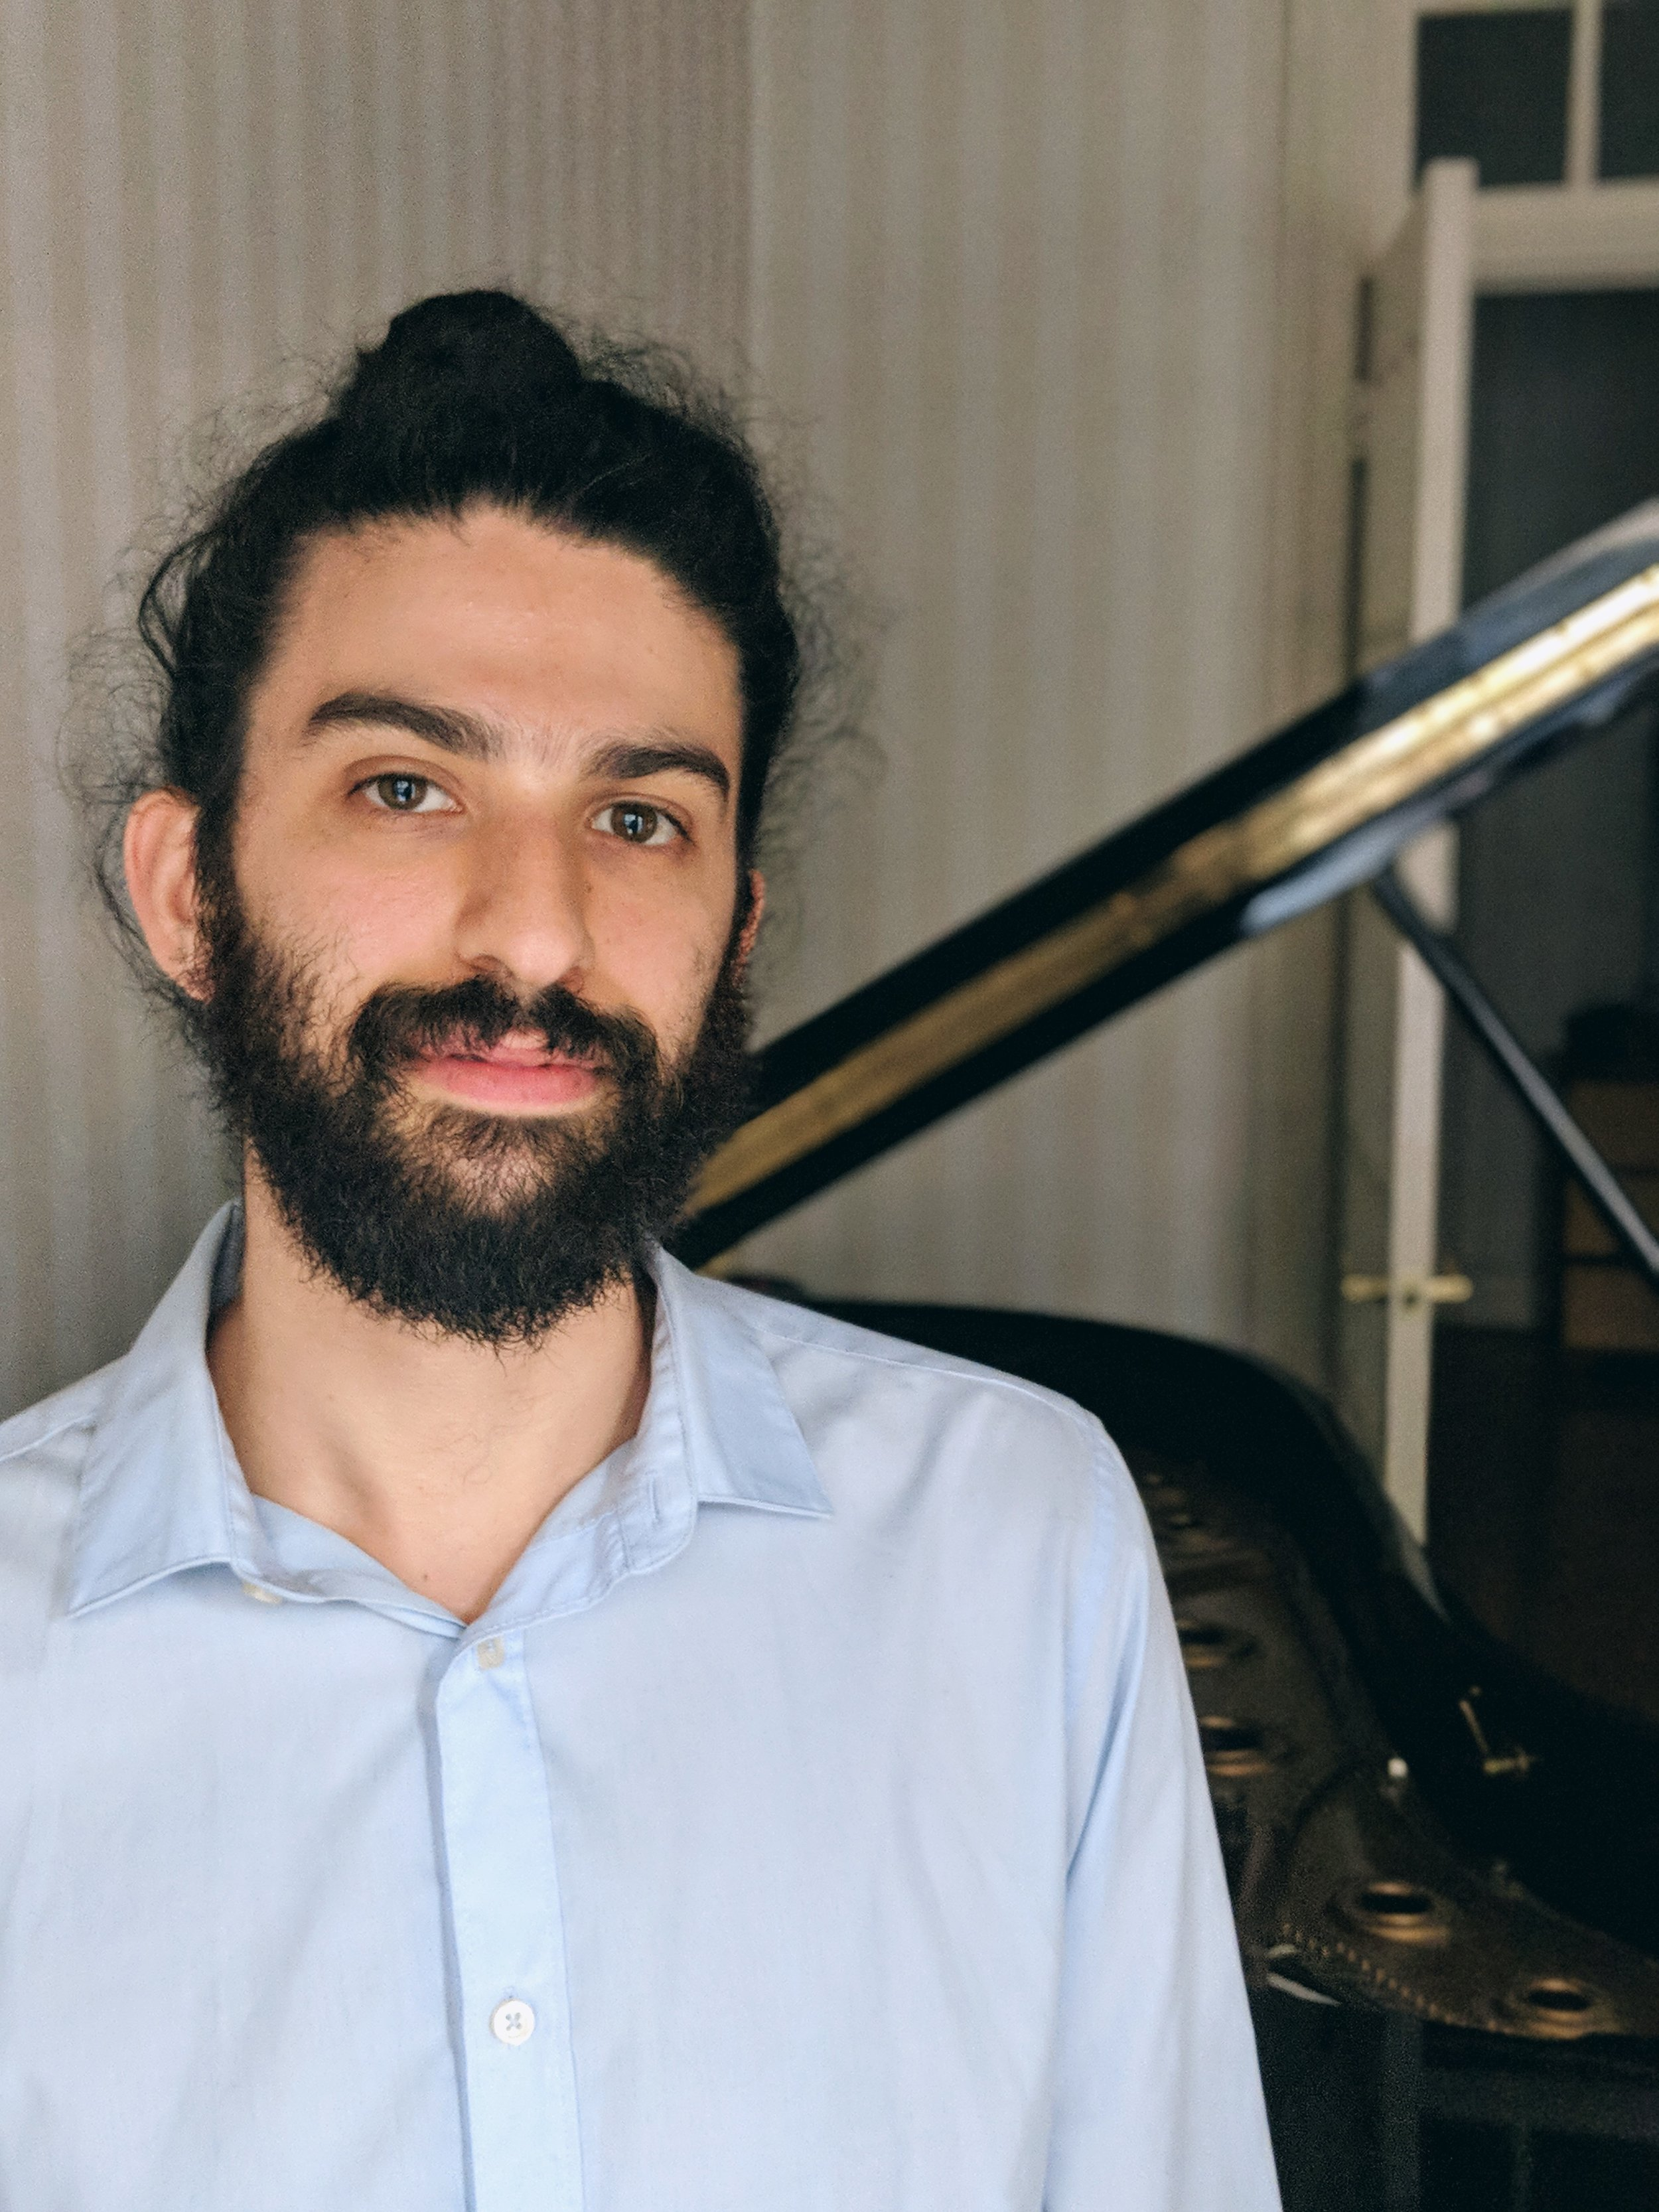 Jesse Greenberg, synthesizer/ percussion/ composer